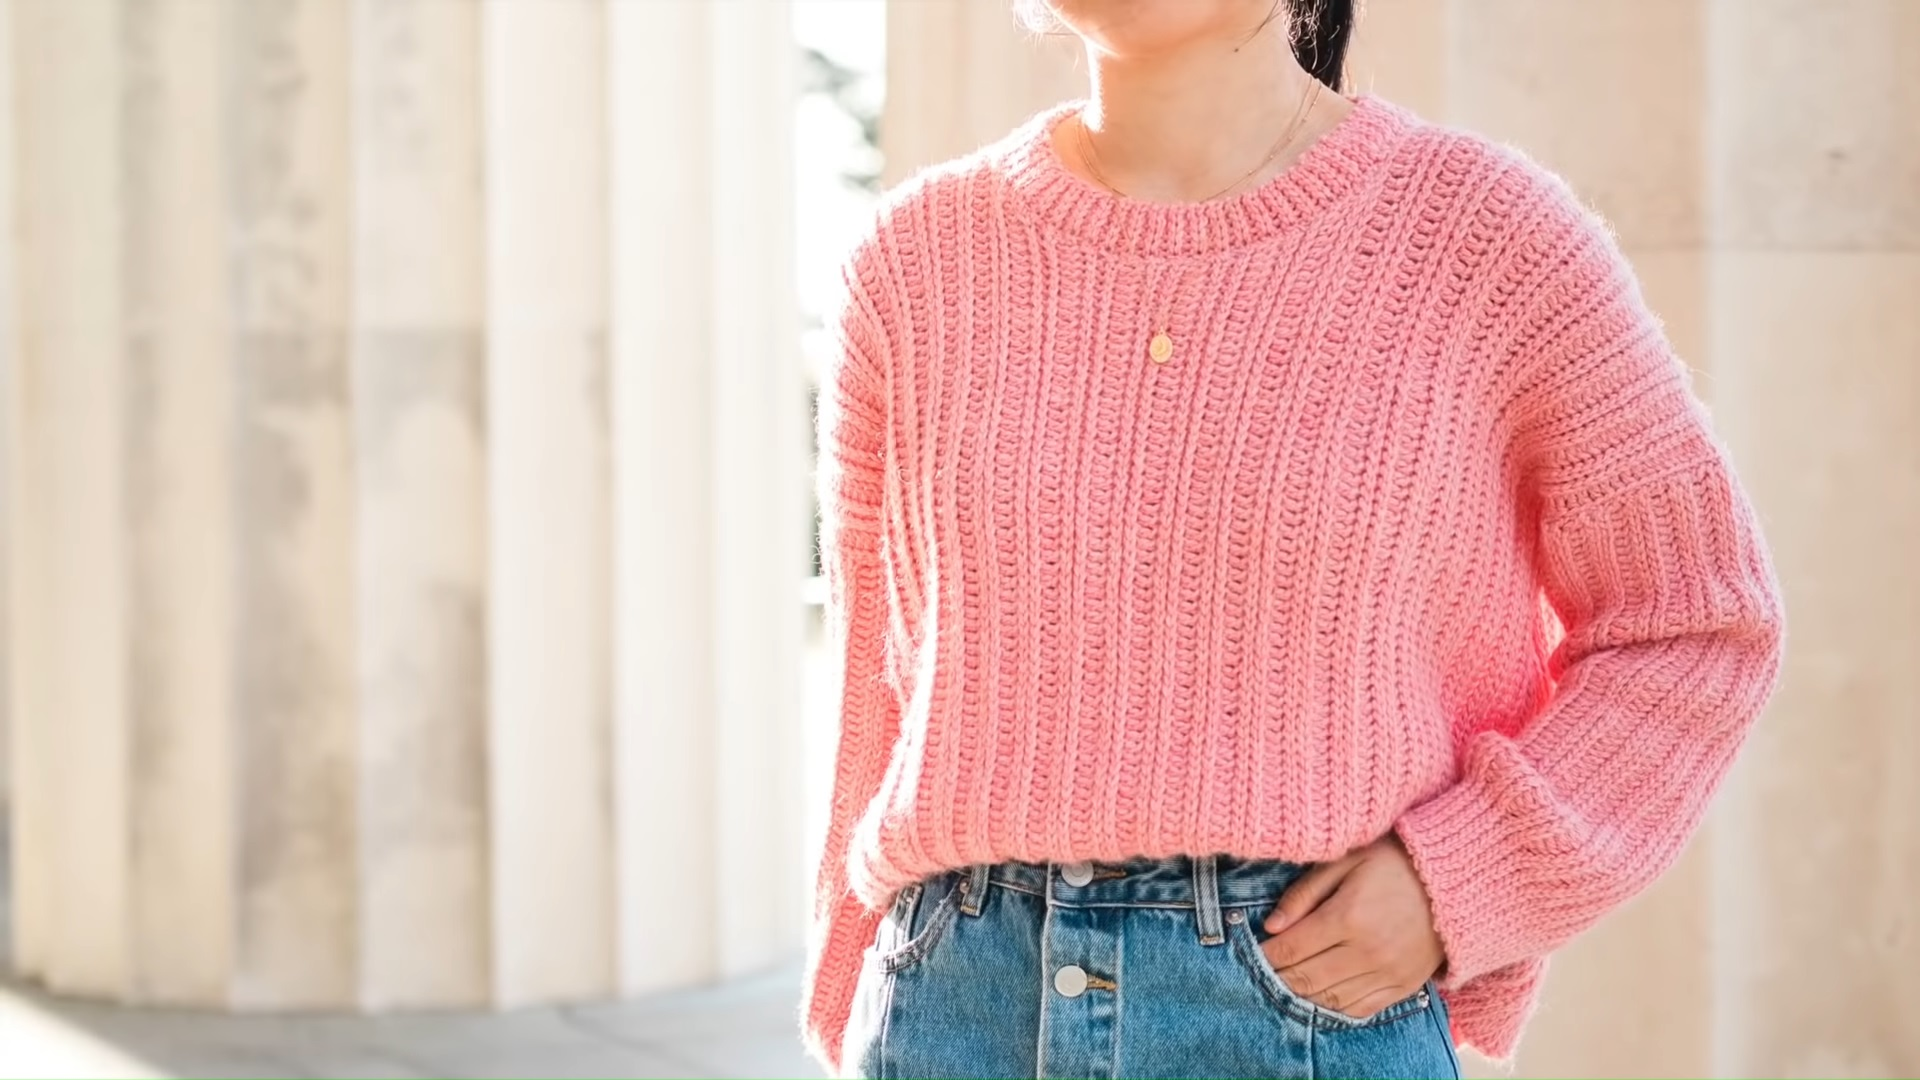 Pink Sweater Crocheting For Free pattern